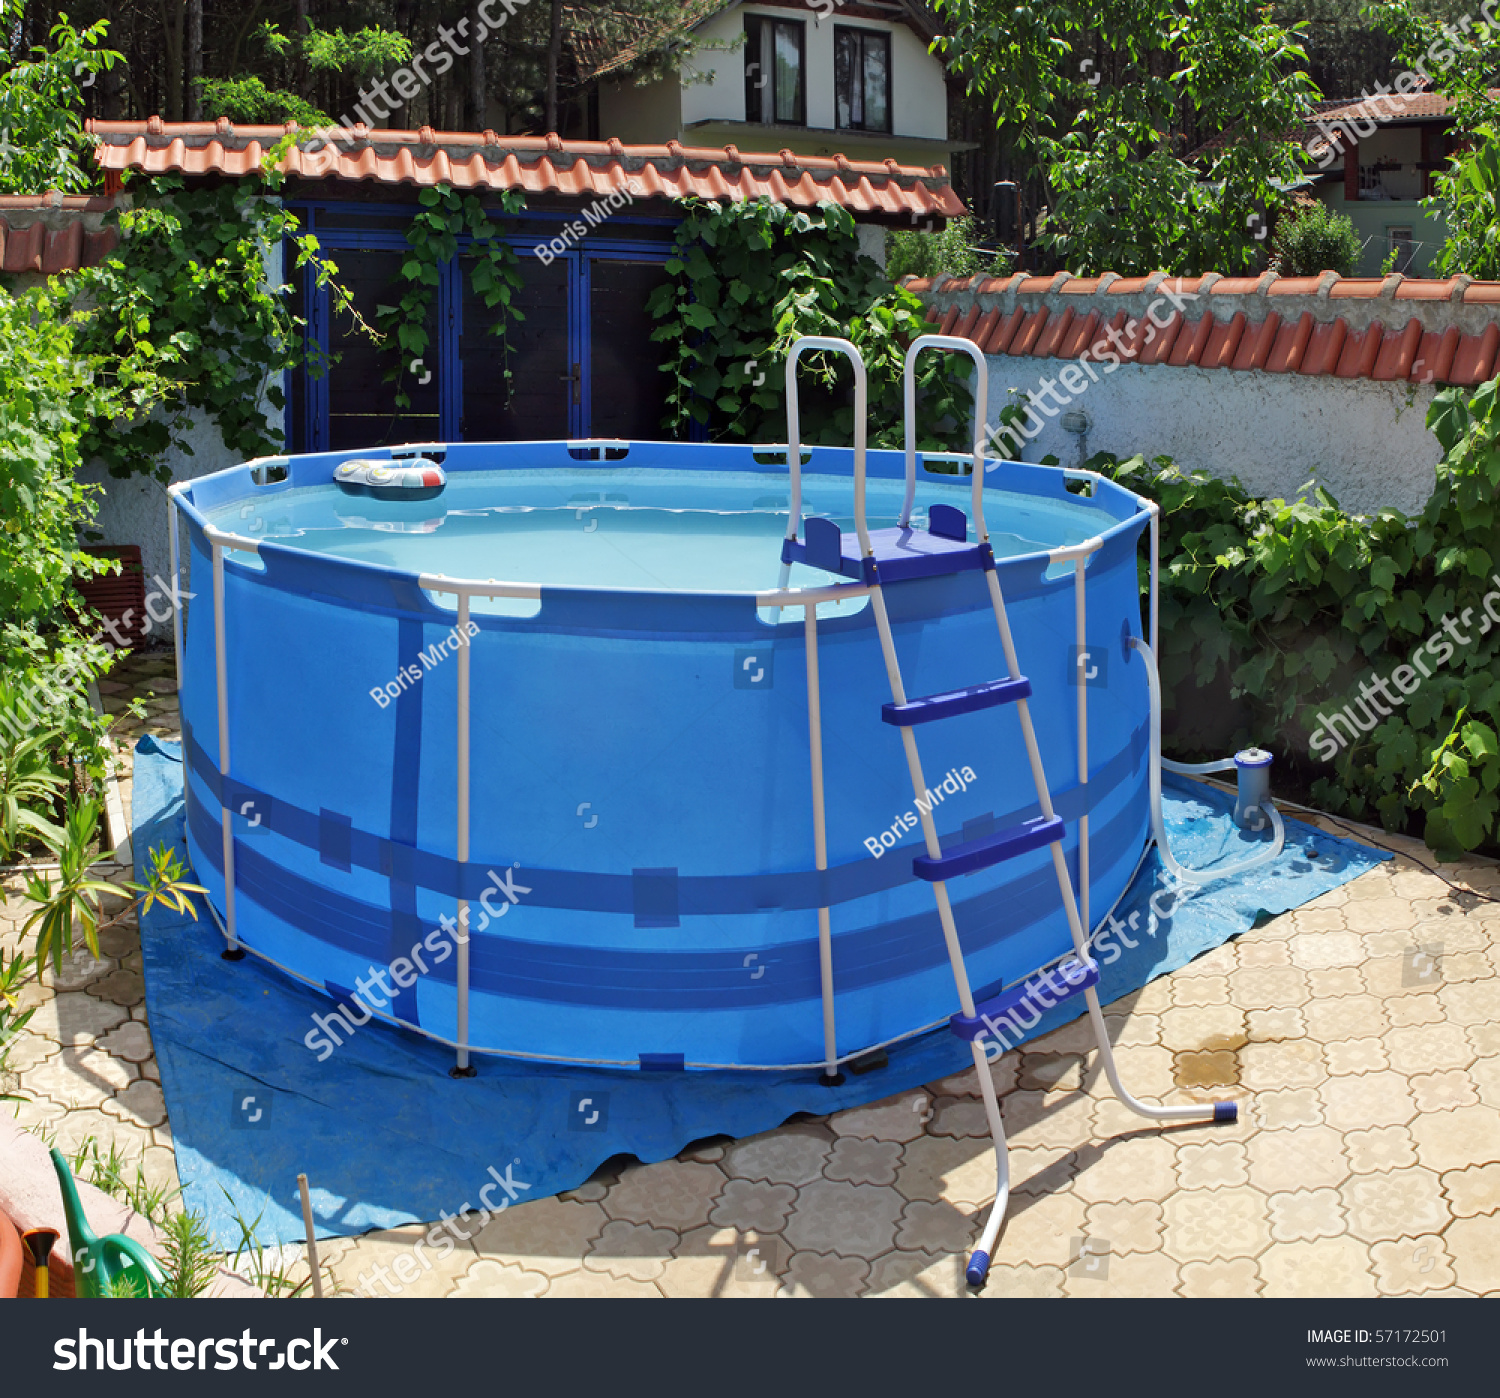 Large above ground metal frame swimming stock photo 57172501 shutterstock for Large above ground swimming pools